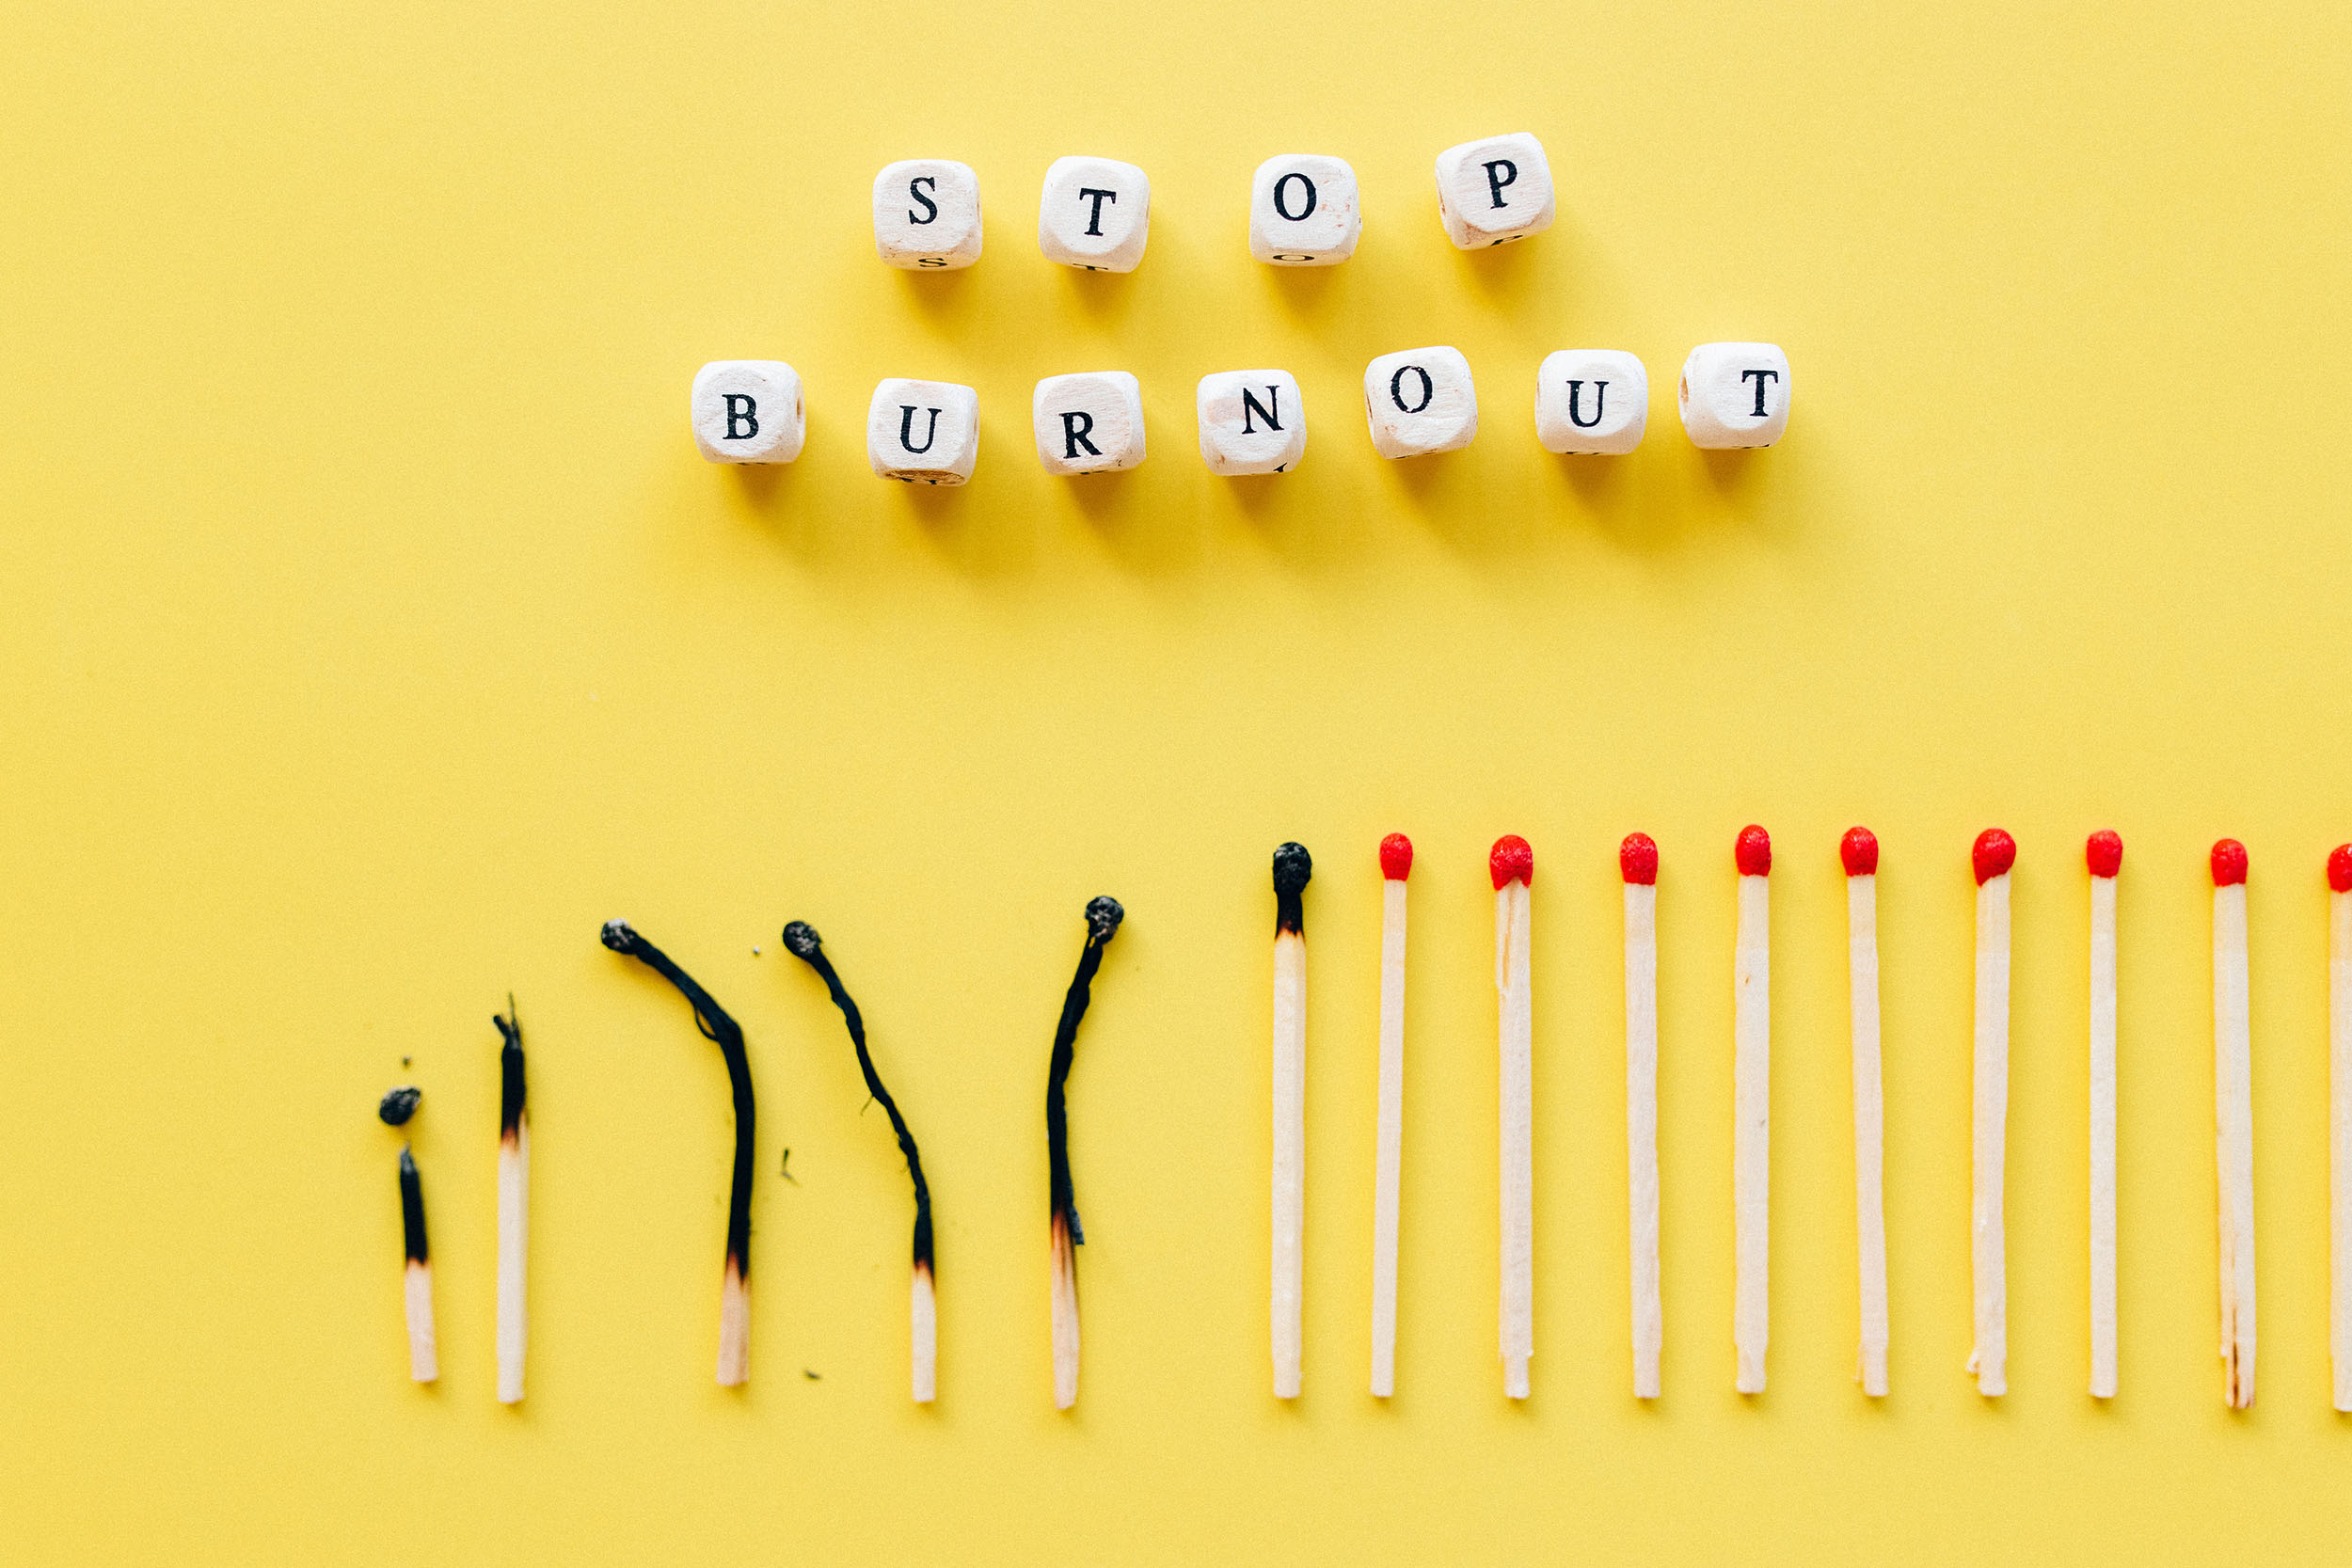 What mistakes might you be making with work burnout?